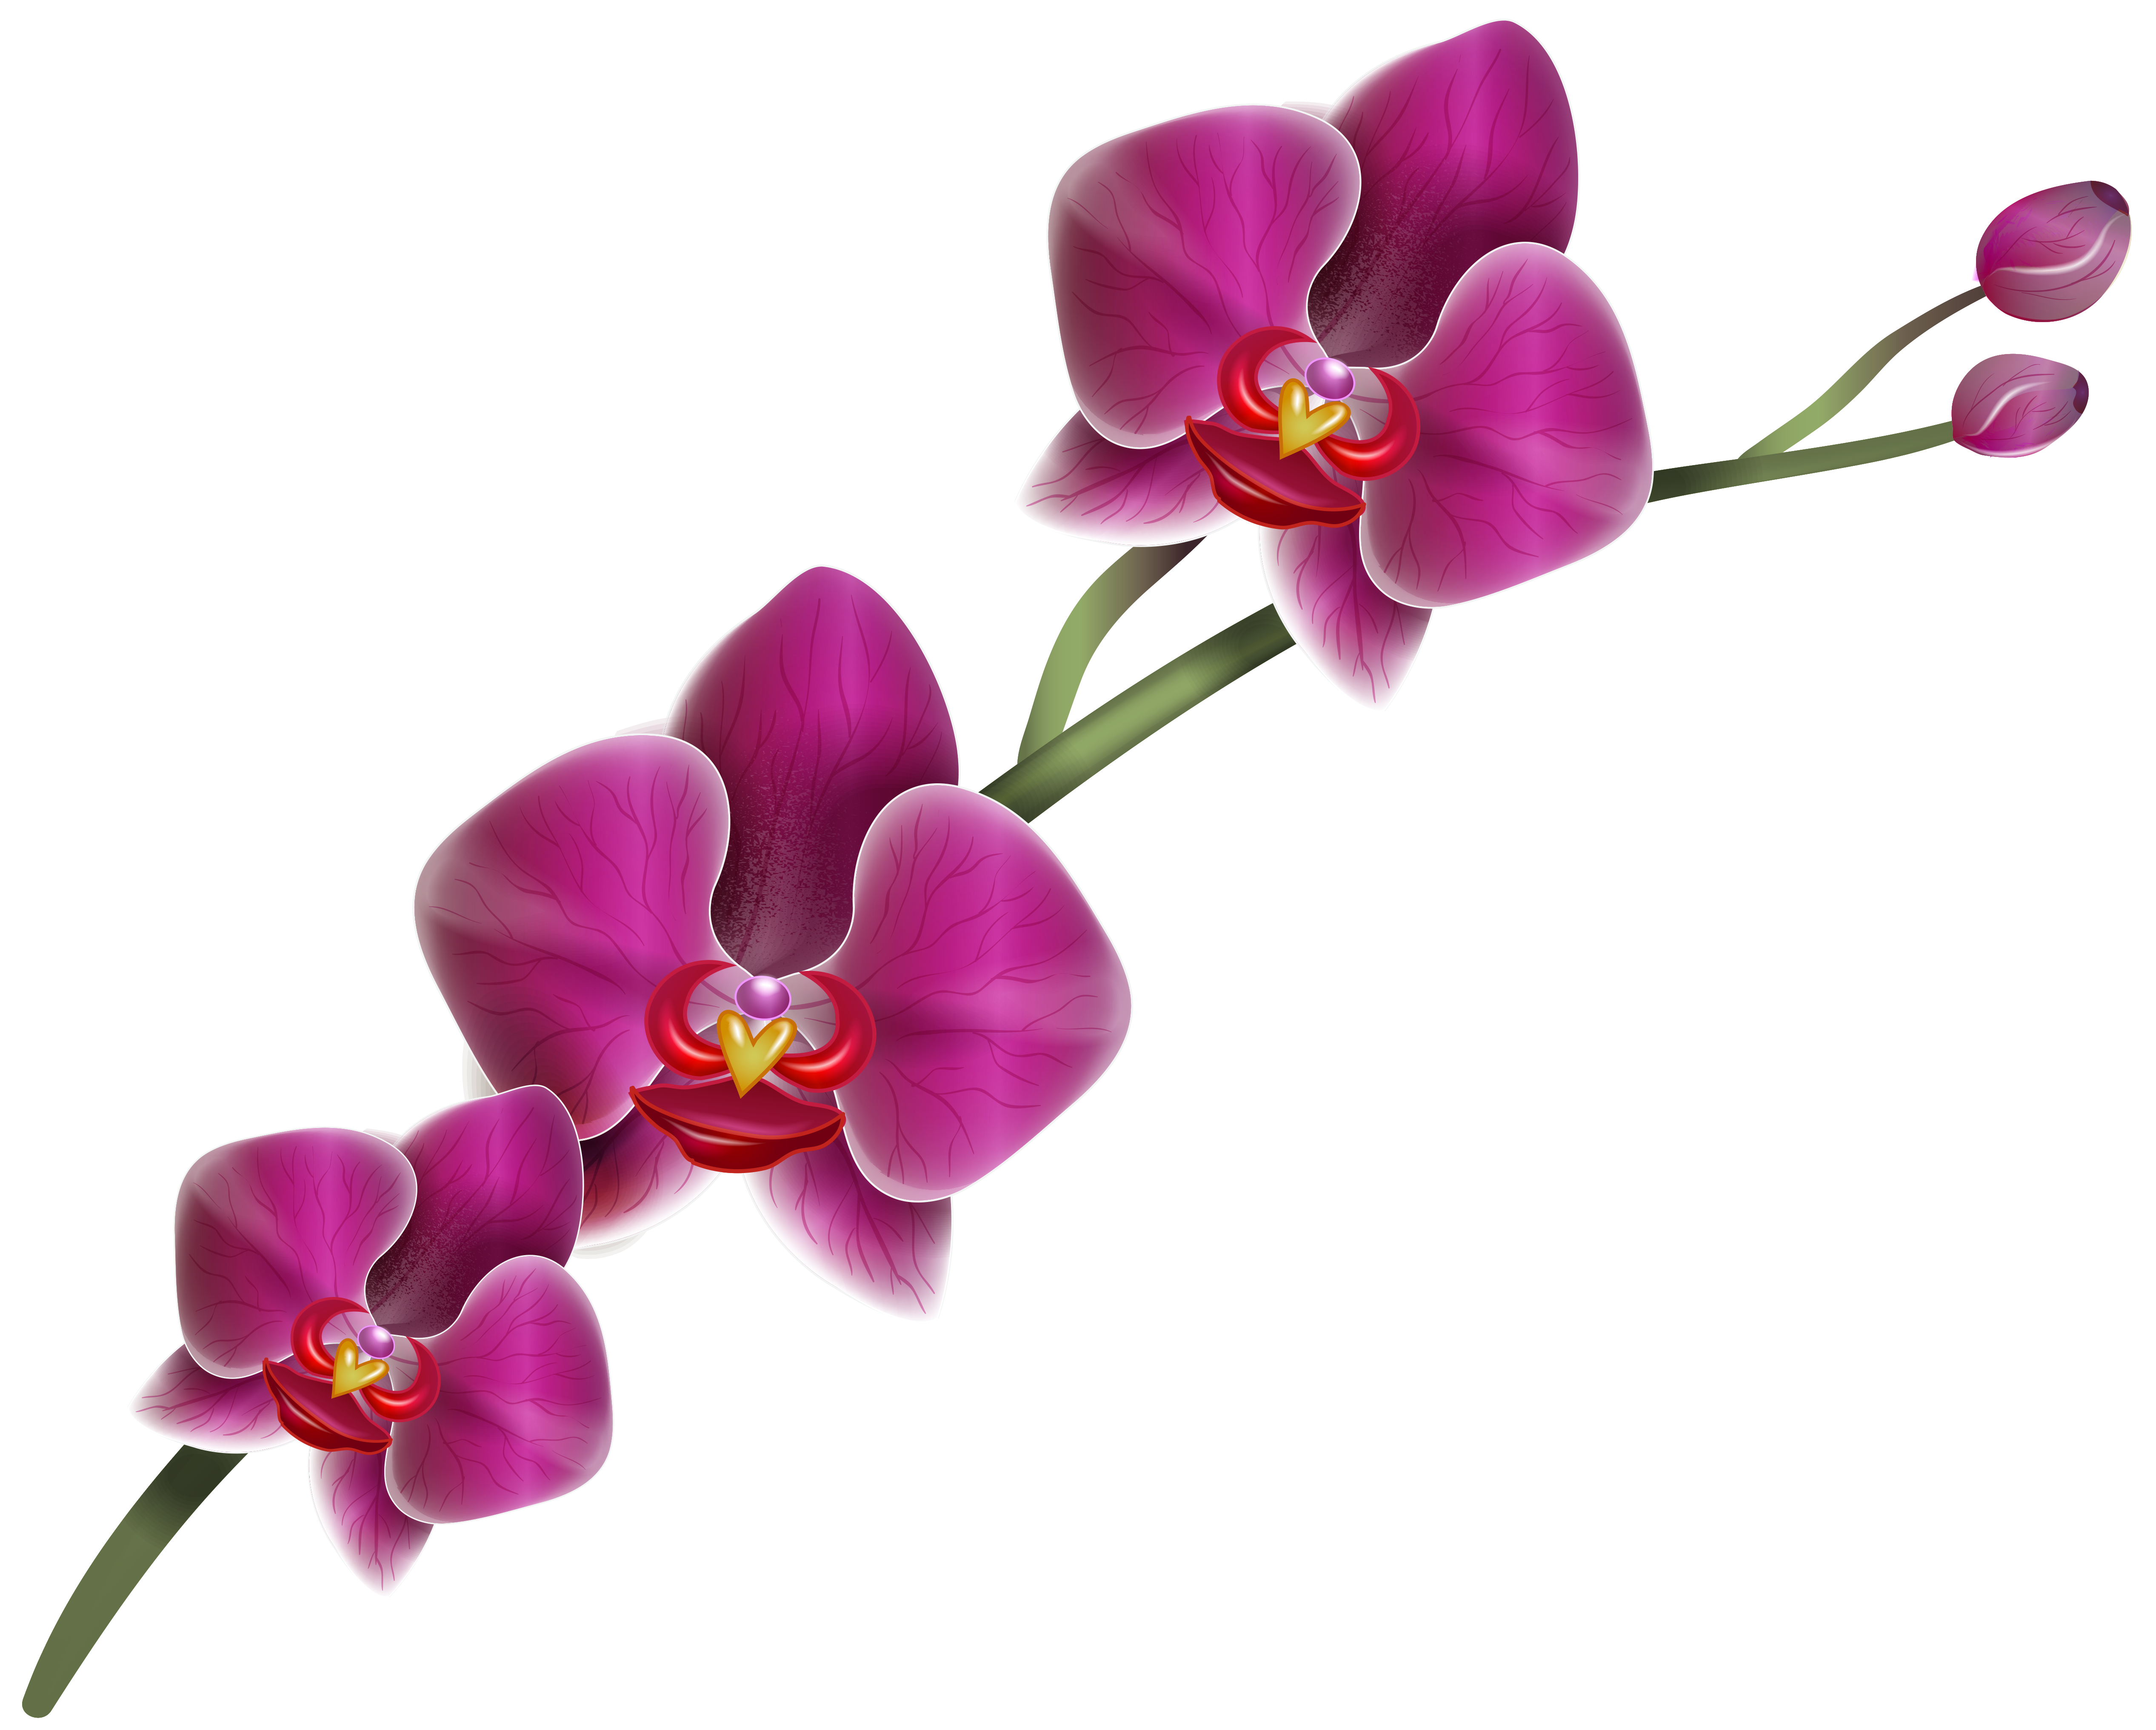 Orchid flower clipart image library library Purple Orchid Clipart PNG Image   Gallery Yopriceville - High ... image library library